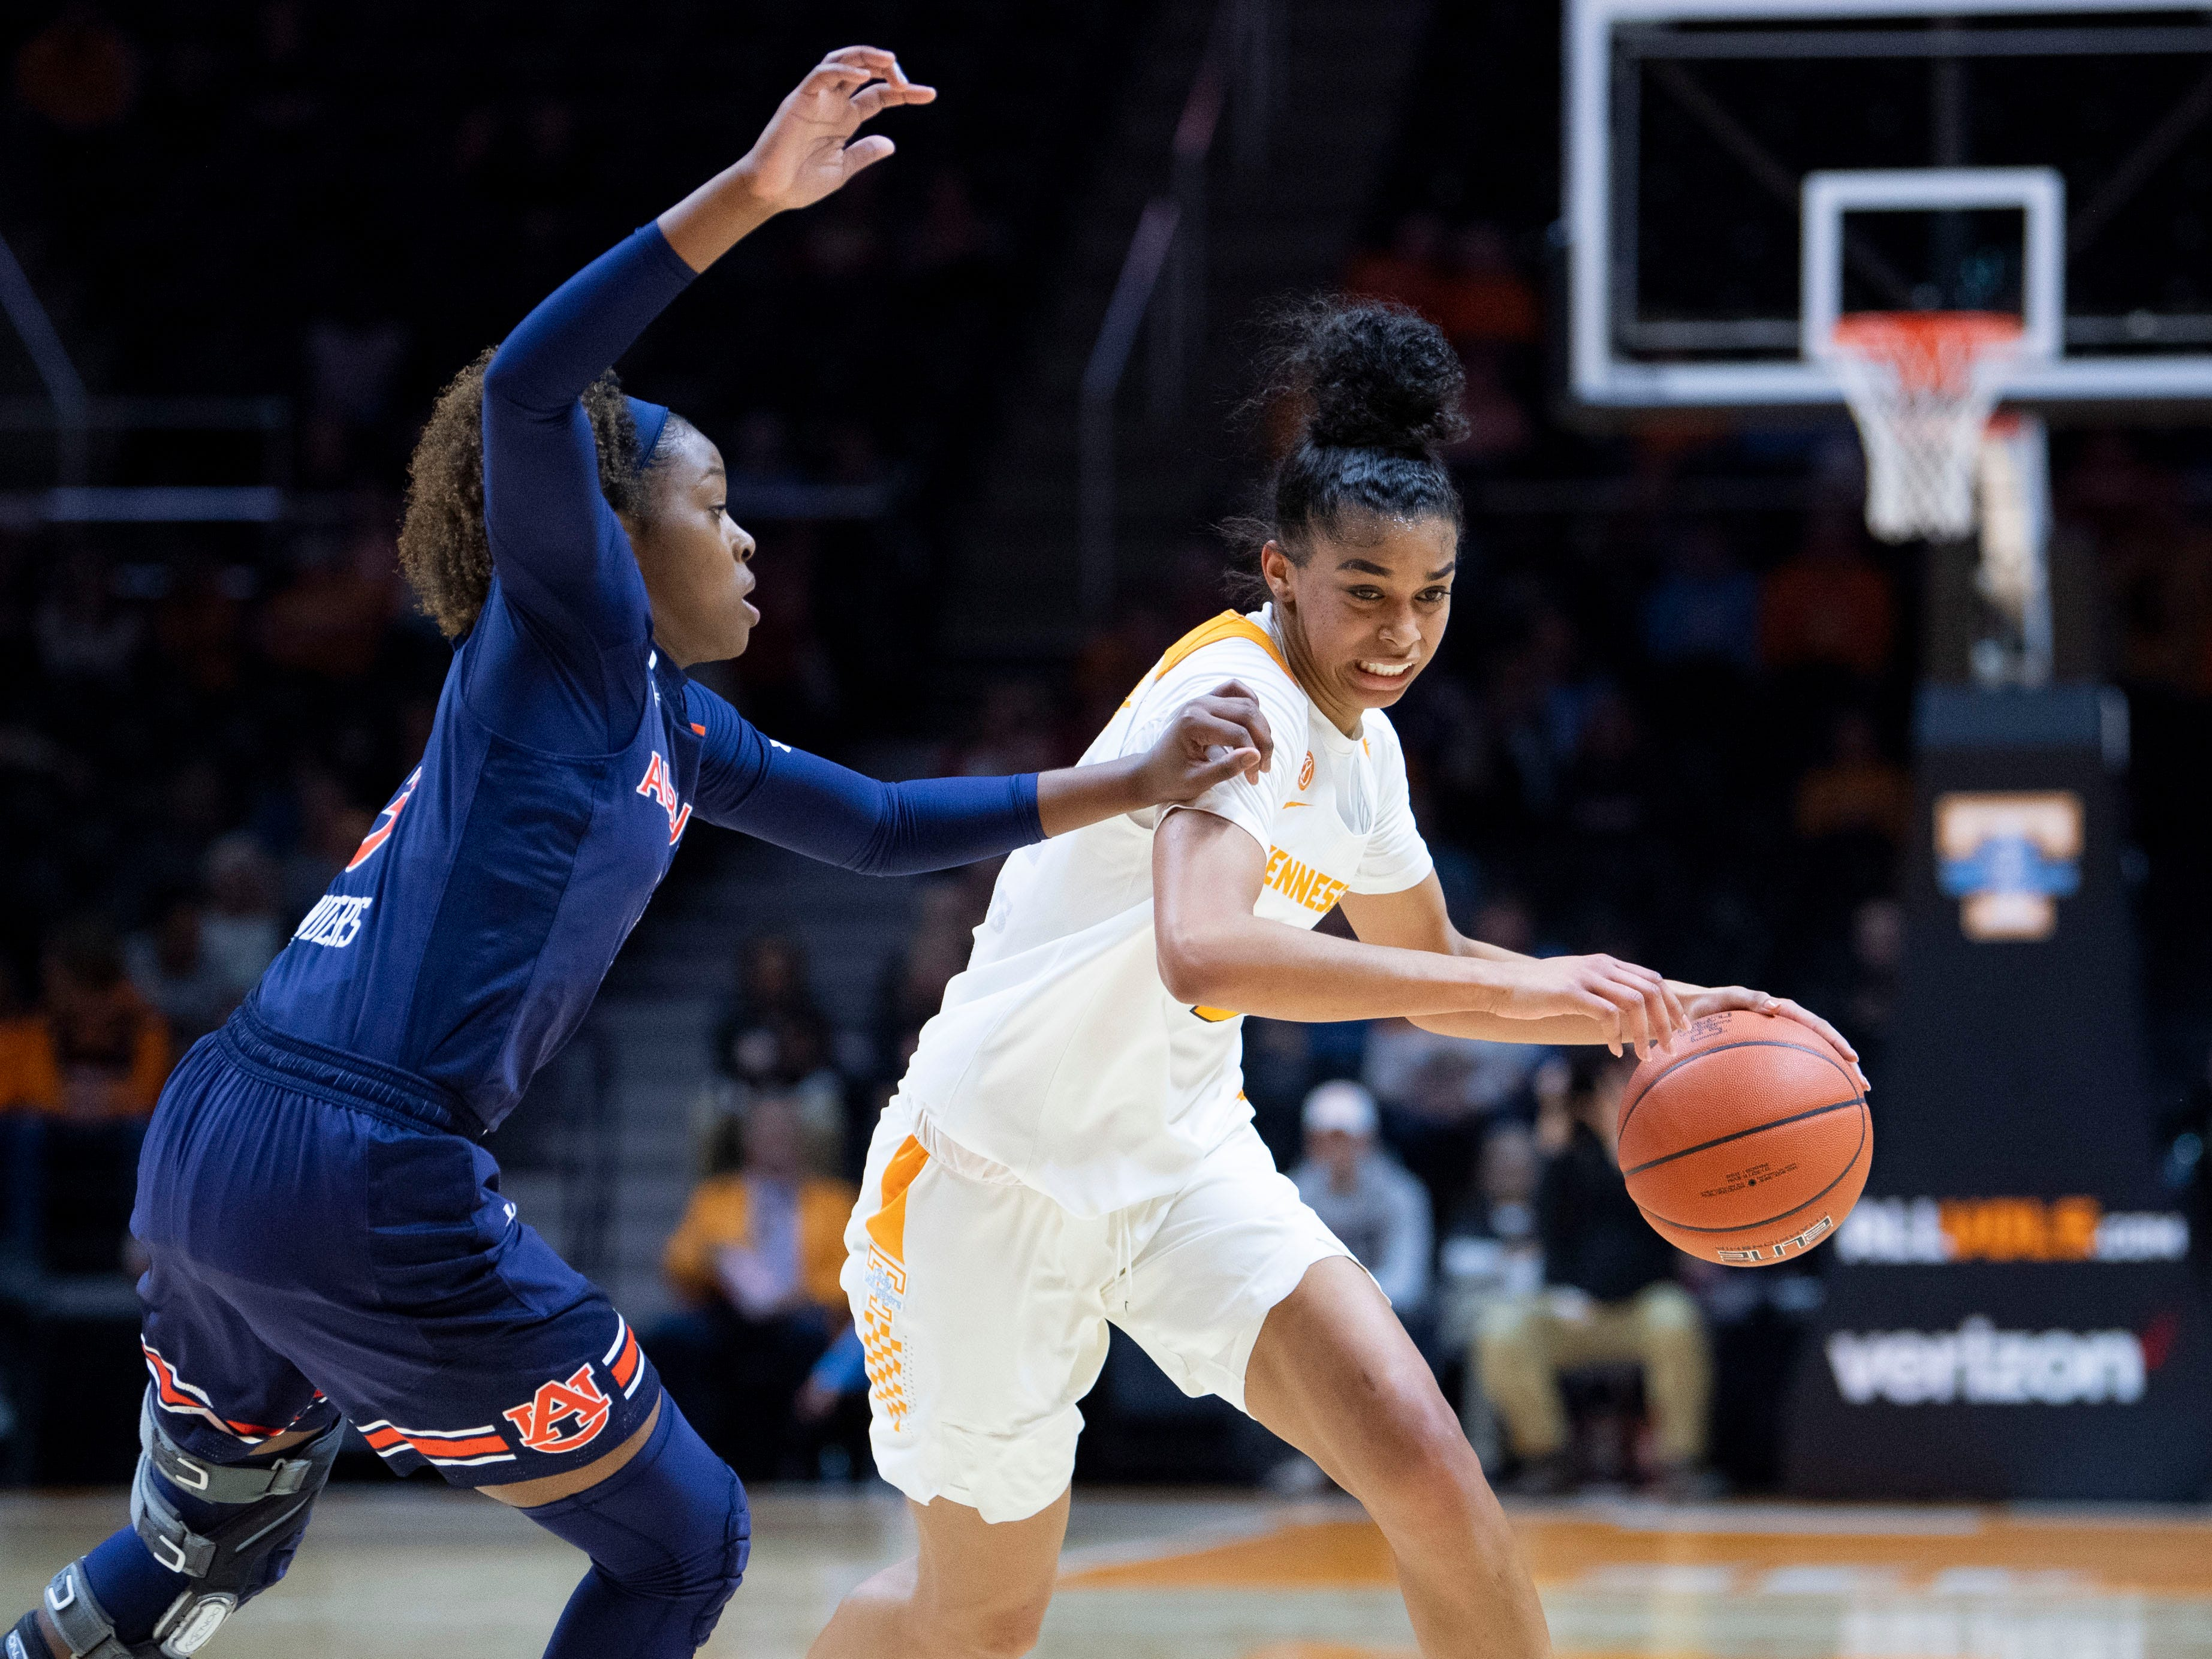 Tennessee's Evina Westbrook (2) drives towards the basket while guarded by Auburn's Erica Sanders (3) on Thursday, February 14, 2019.